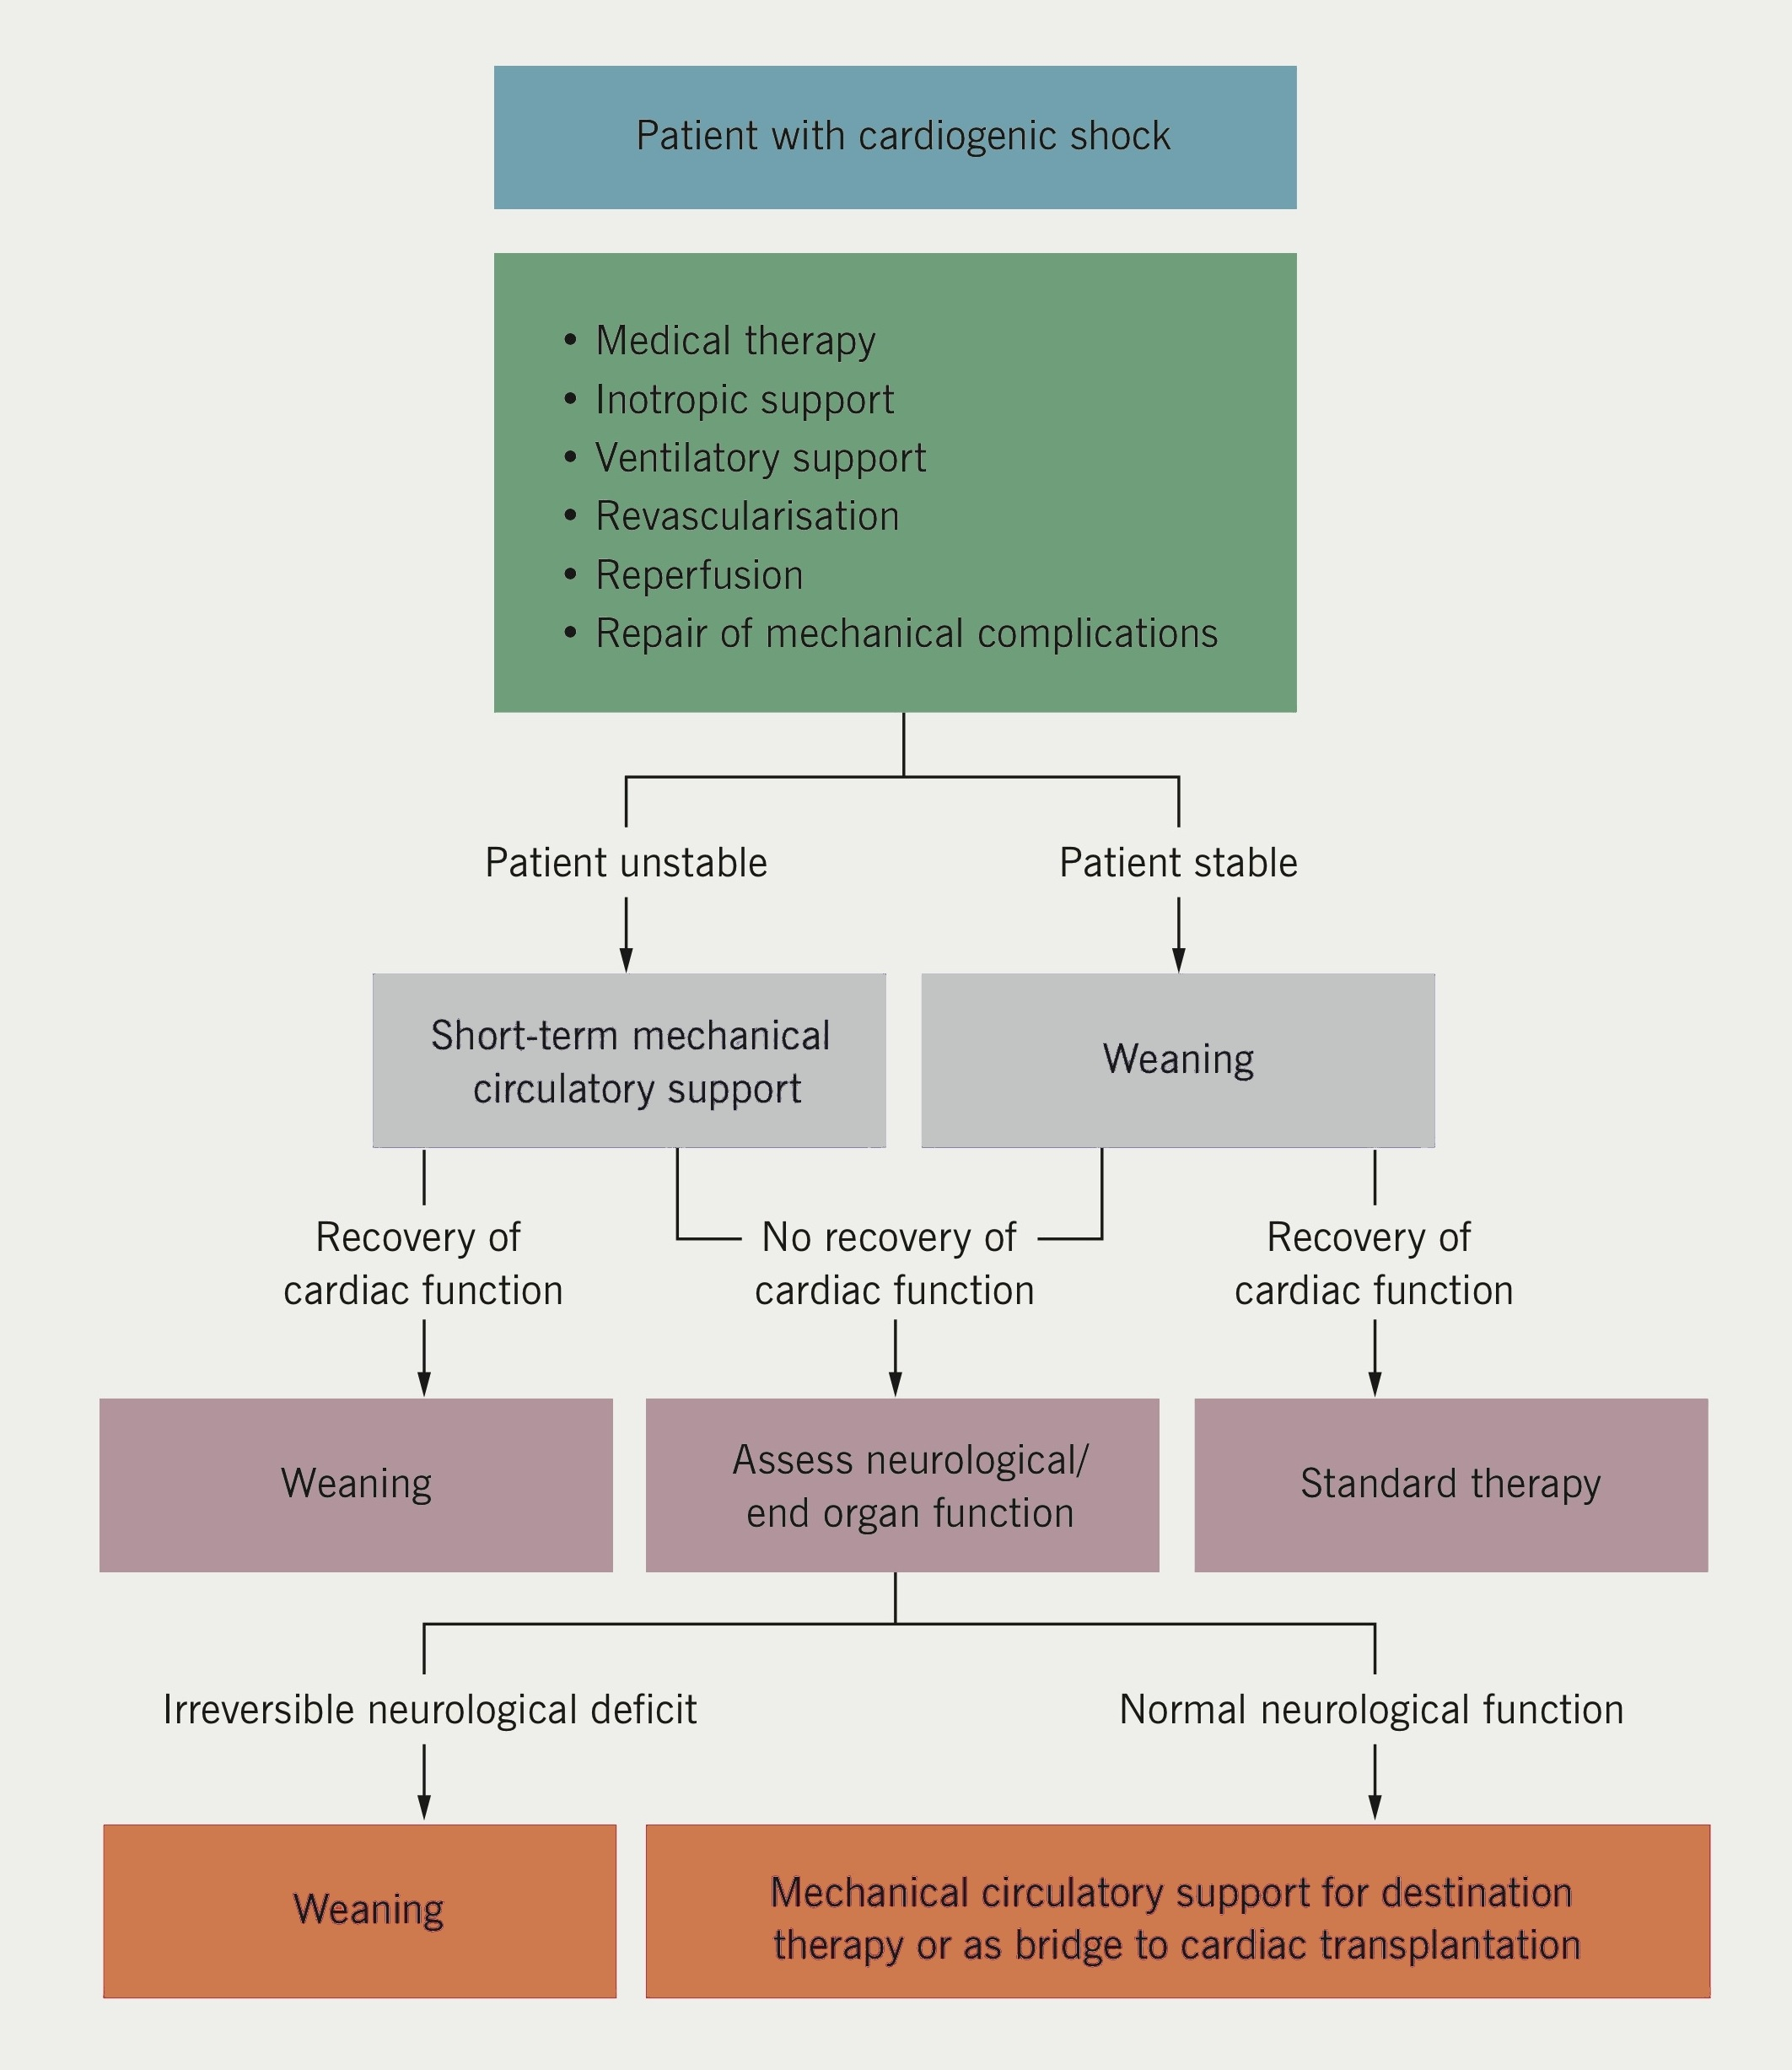 Figure 2. European Society of Cardiology (ESC)/European Association for Cardio- Thoracic Surgery (EACTS) guidelines on myocardial revascularisation. Treatment of patients with cardiogenic shock(18)